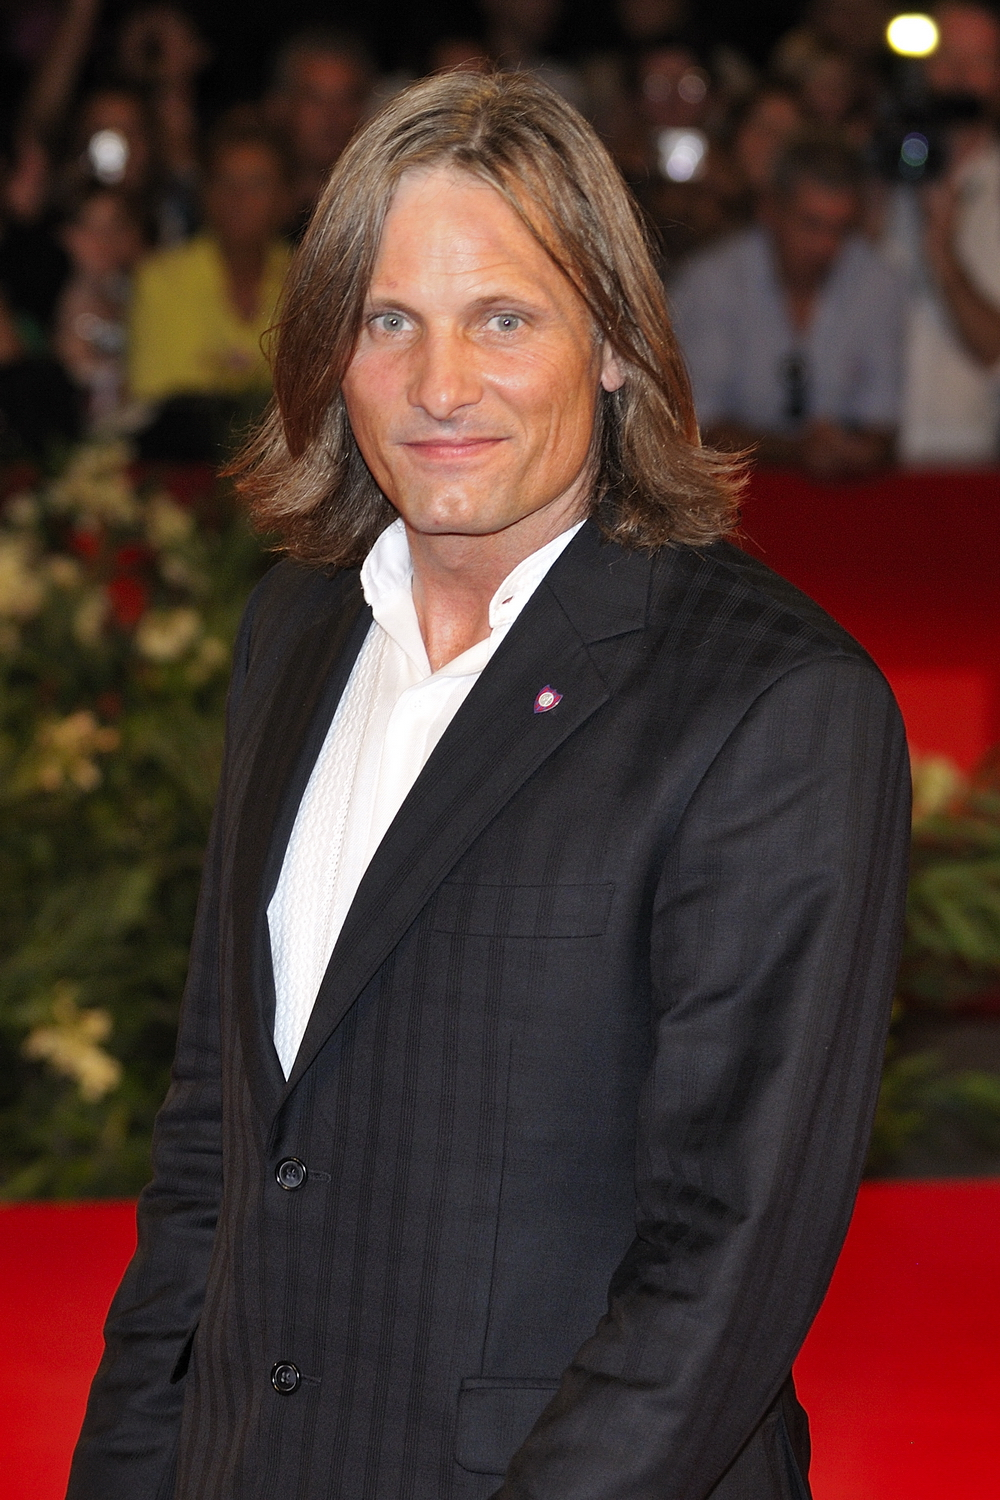 Viggo Mortensen Son In Lord Of The Rings